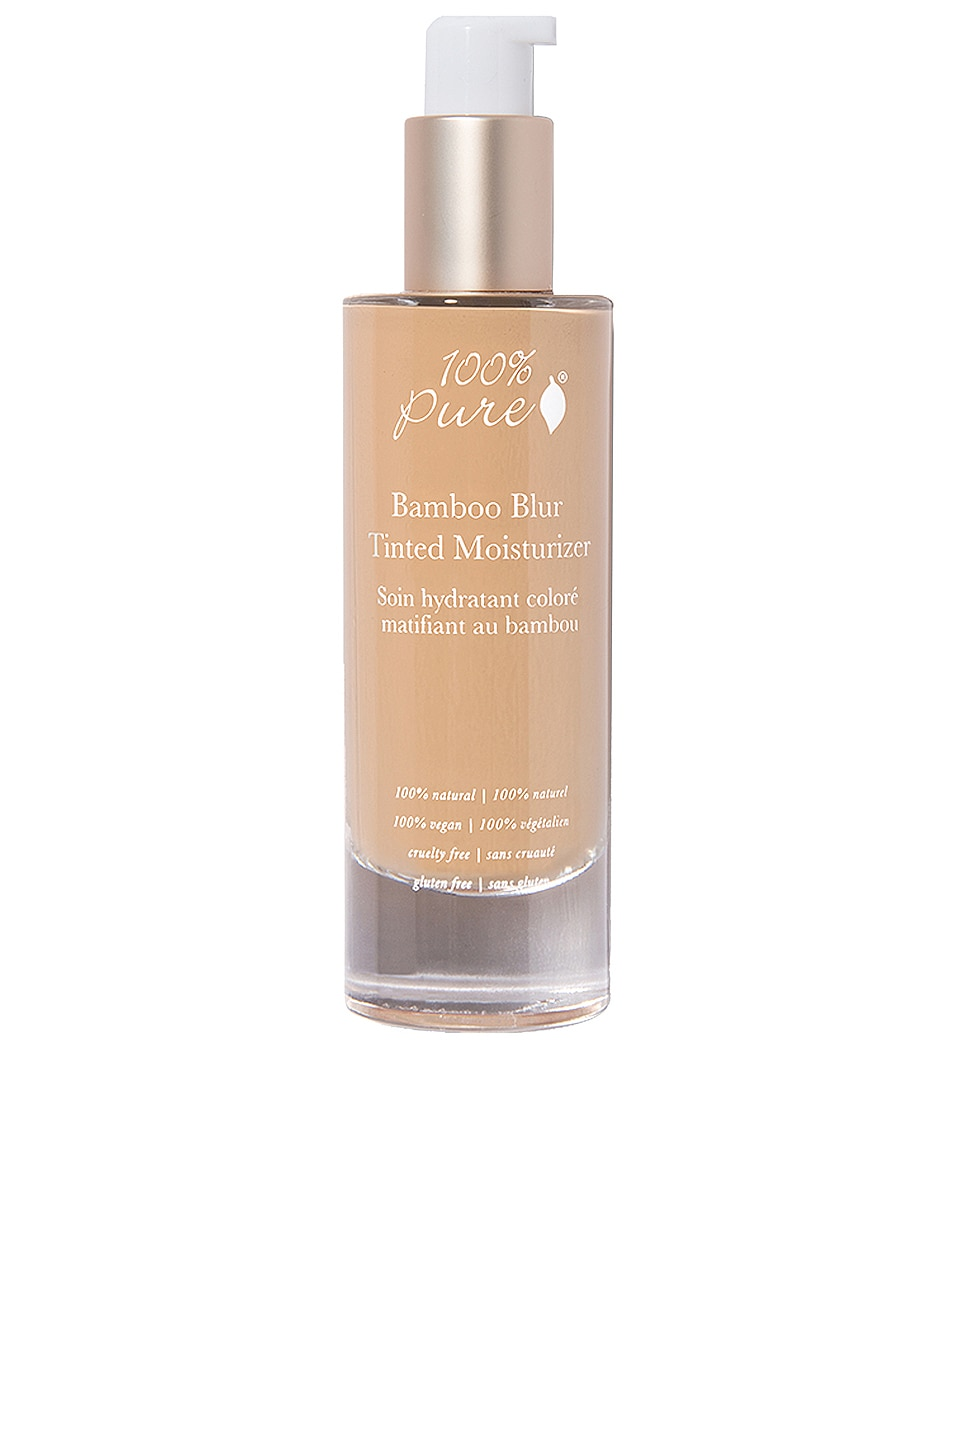 100% Pure Bamboo Blur Tinted Moisturizer in Golden Peach